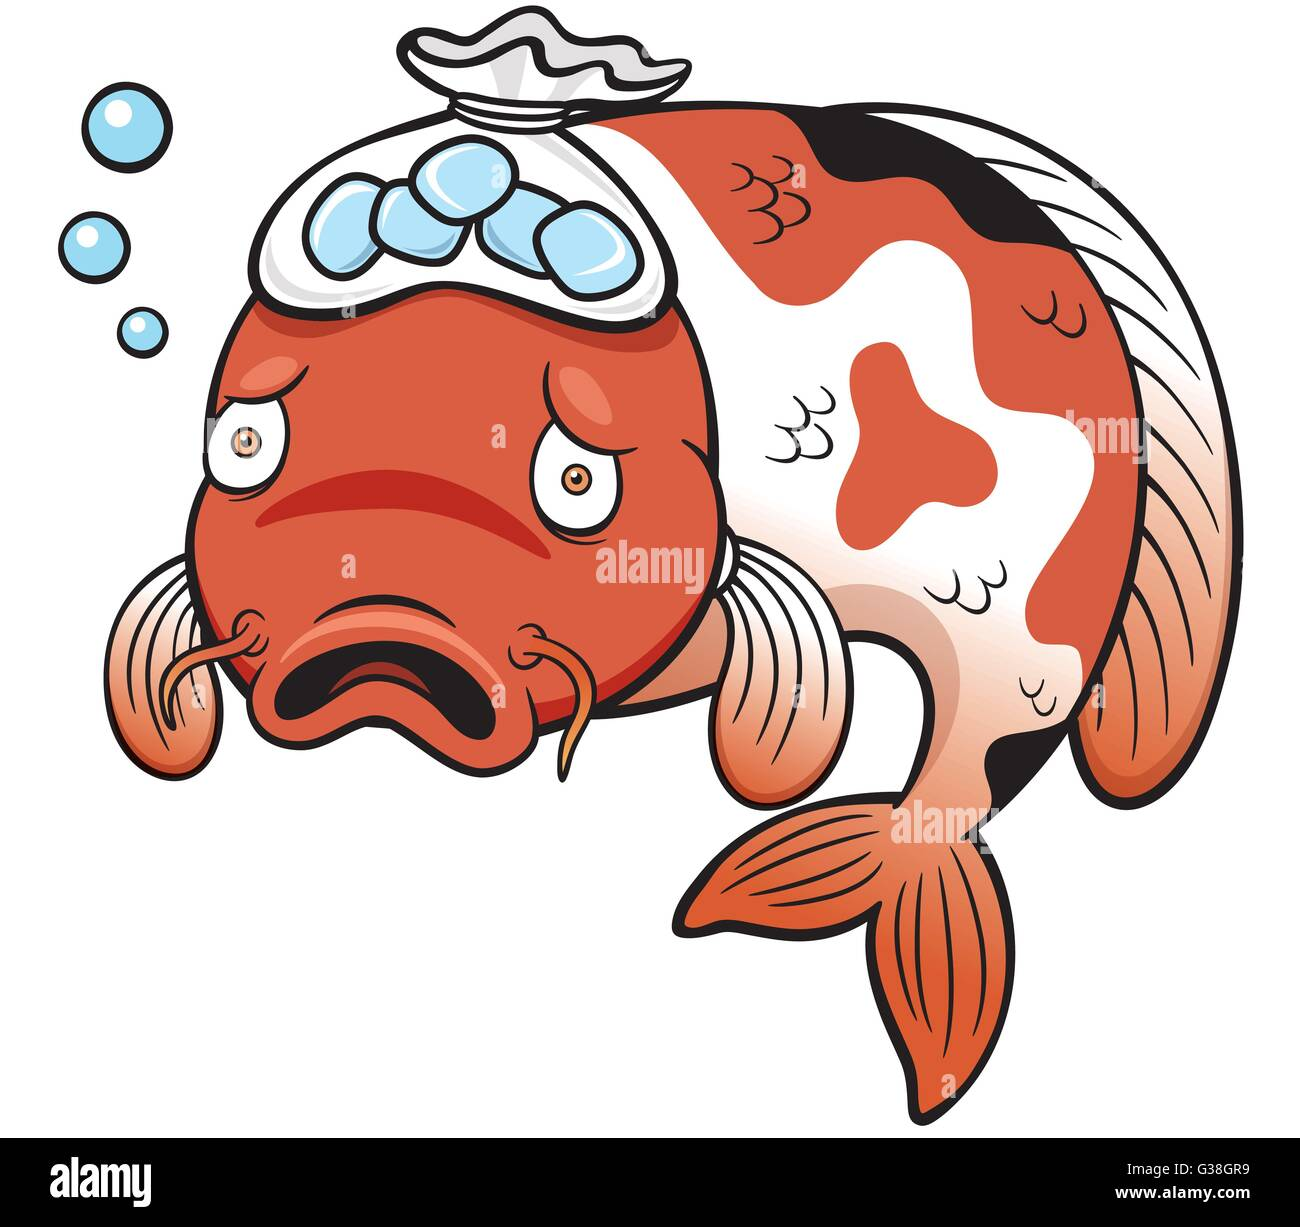 Red Fish Cartoon Stock Photos & Red Fish Cartoon Stock Images - Alamy